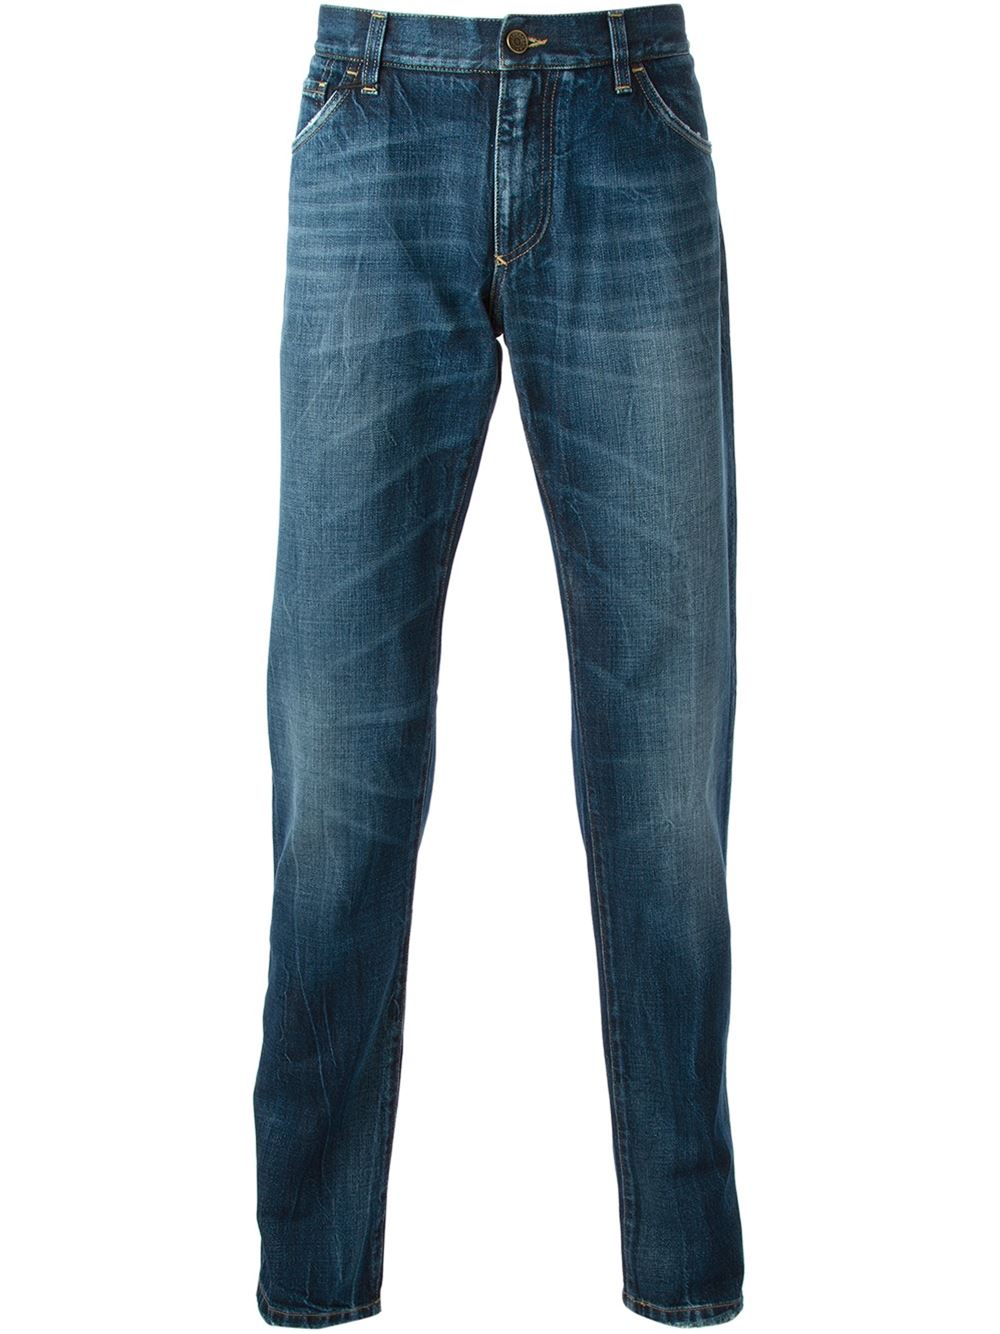 dolce gabbana tapered jeans in blue for men lyst. Black Bedroom Furniture Sets. Home Design Ideas